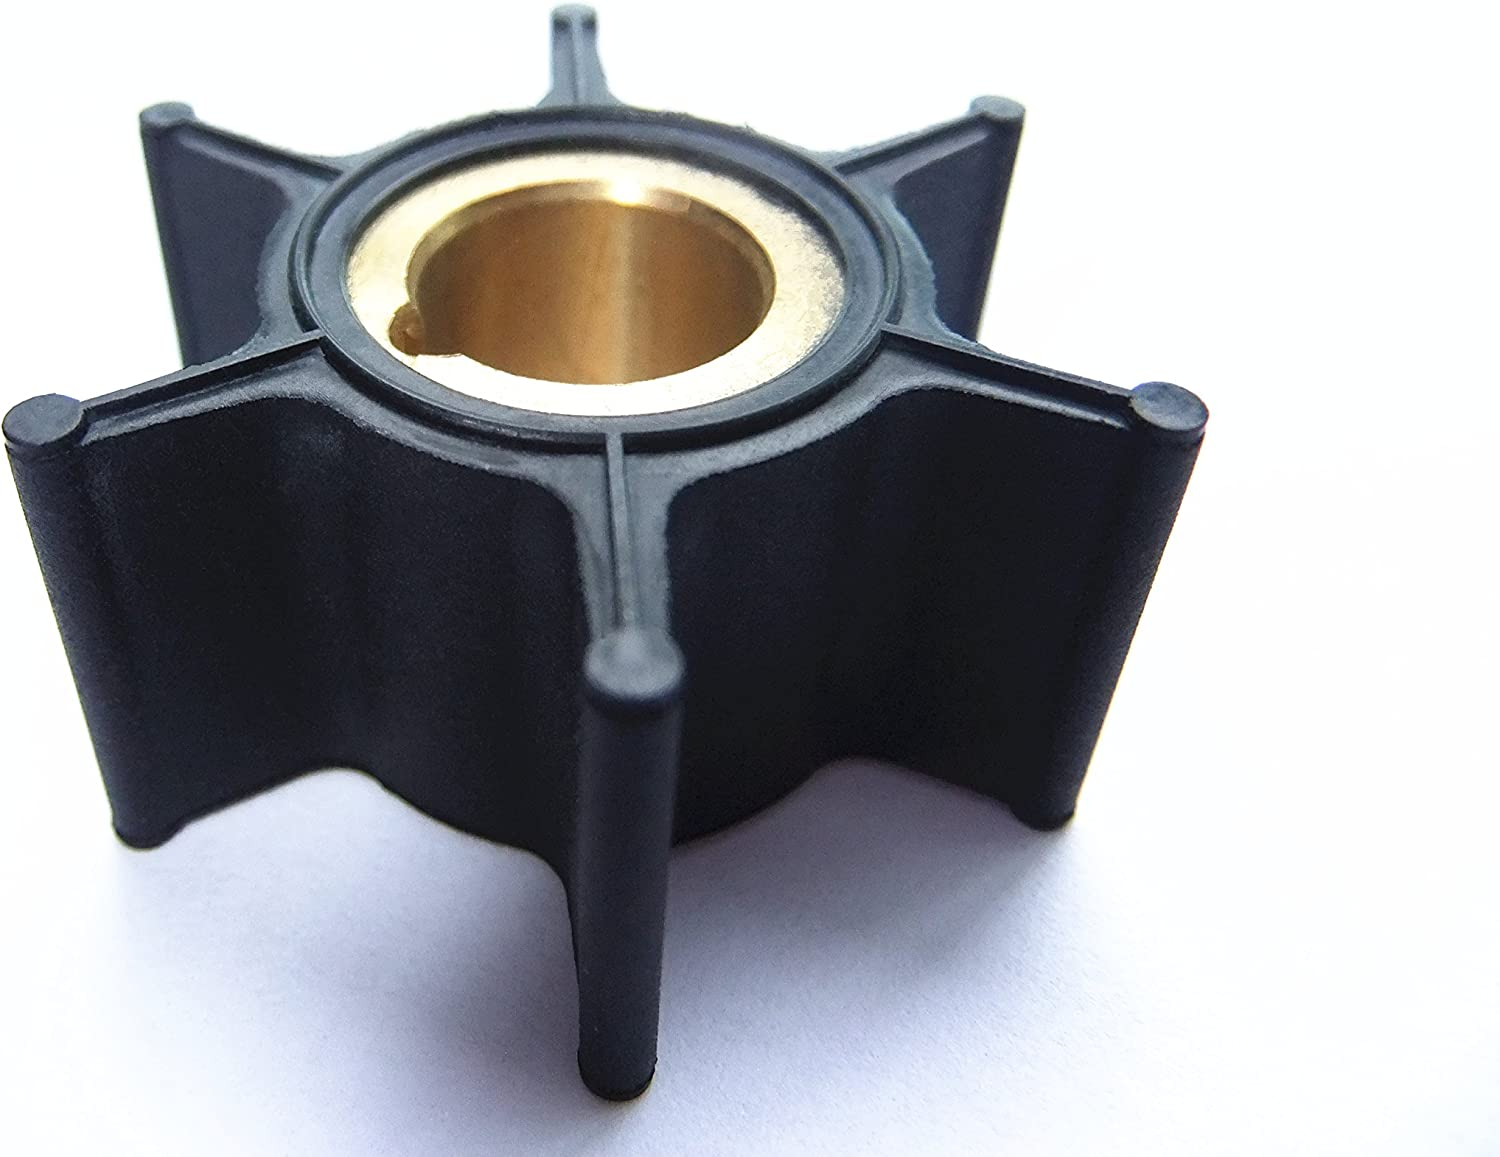 SouthMarine 3B2-65021-1 18-8920 Boat Engine Impeller for Nissan Tohatsu 6HP 8HP 9.8HP Outboard Motor Water Pump